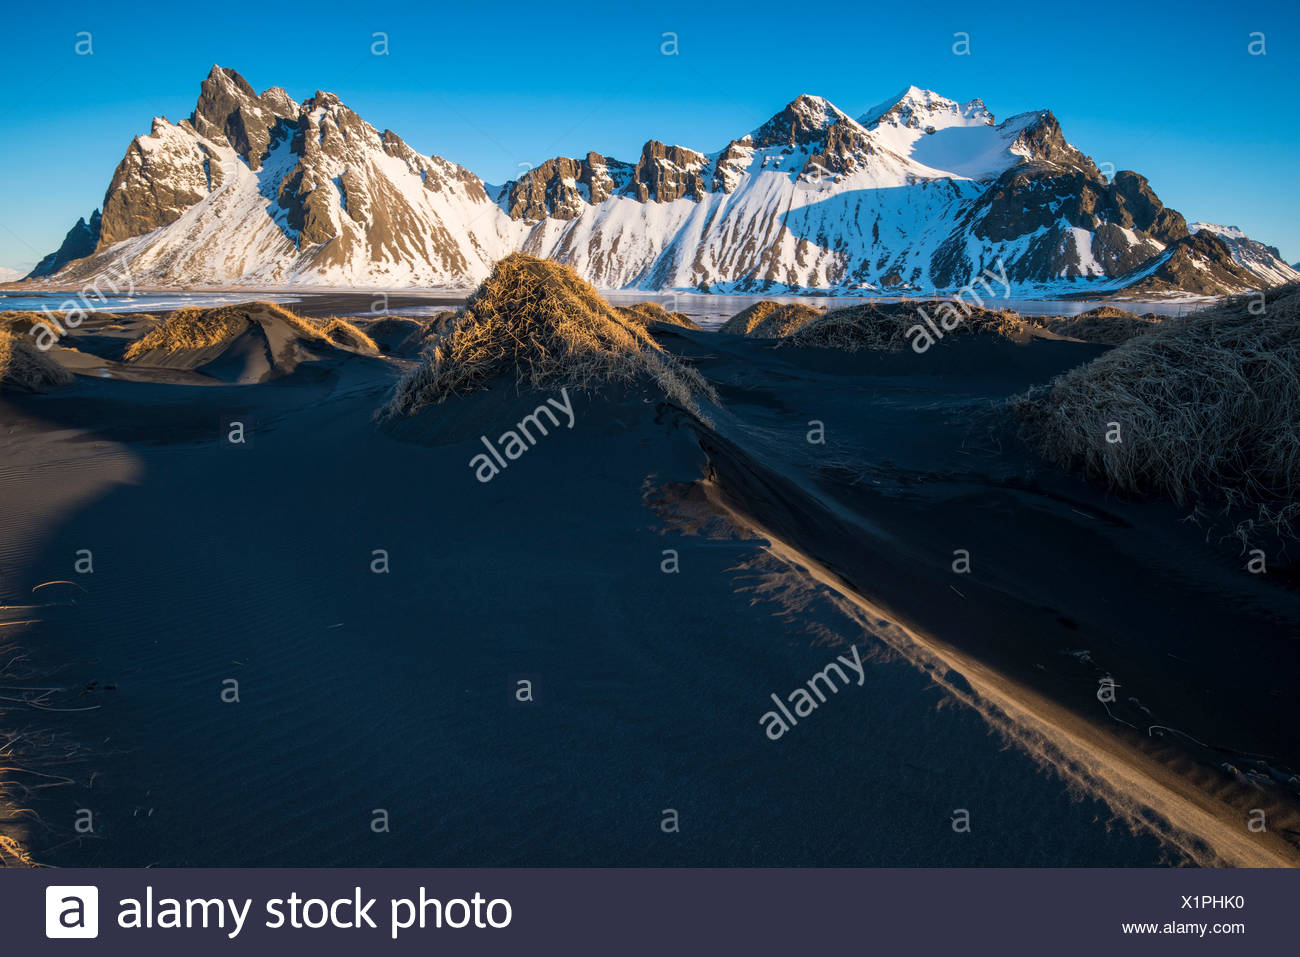 Stokksnes, Eastern Iceland, Europe. Small mounds in with Vestrahorn mountain in the backdrop in a frozen winter landscape. Stock Photo